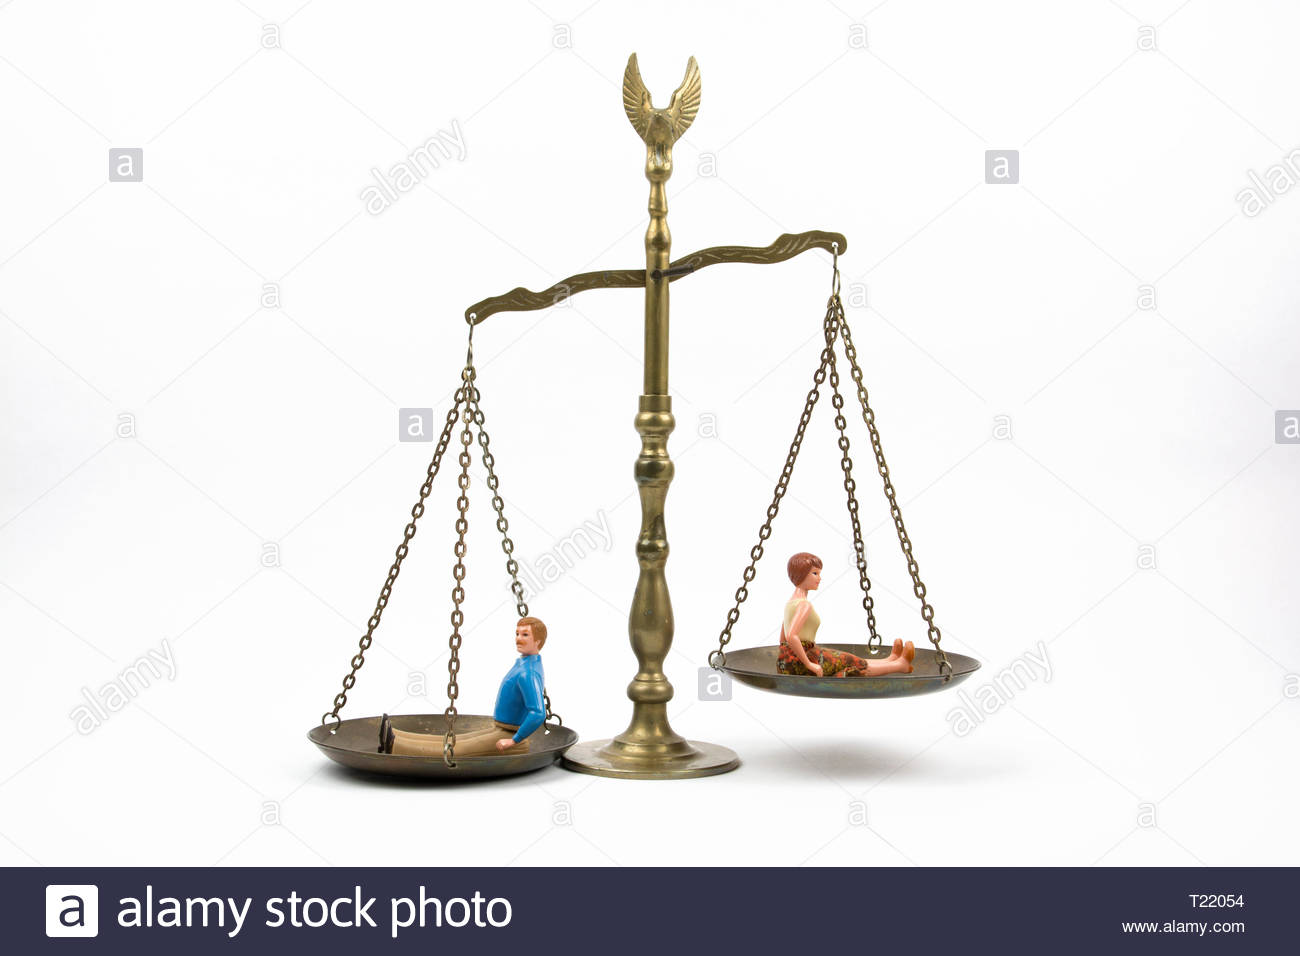 An image of the scales of justice with a man and a woman sitting on the scales. The man carries more weight than the woman, a symbol of inequality. - Stock Image